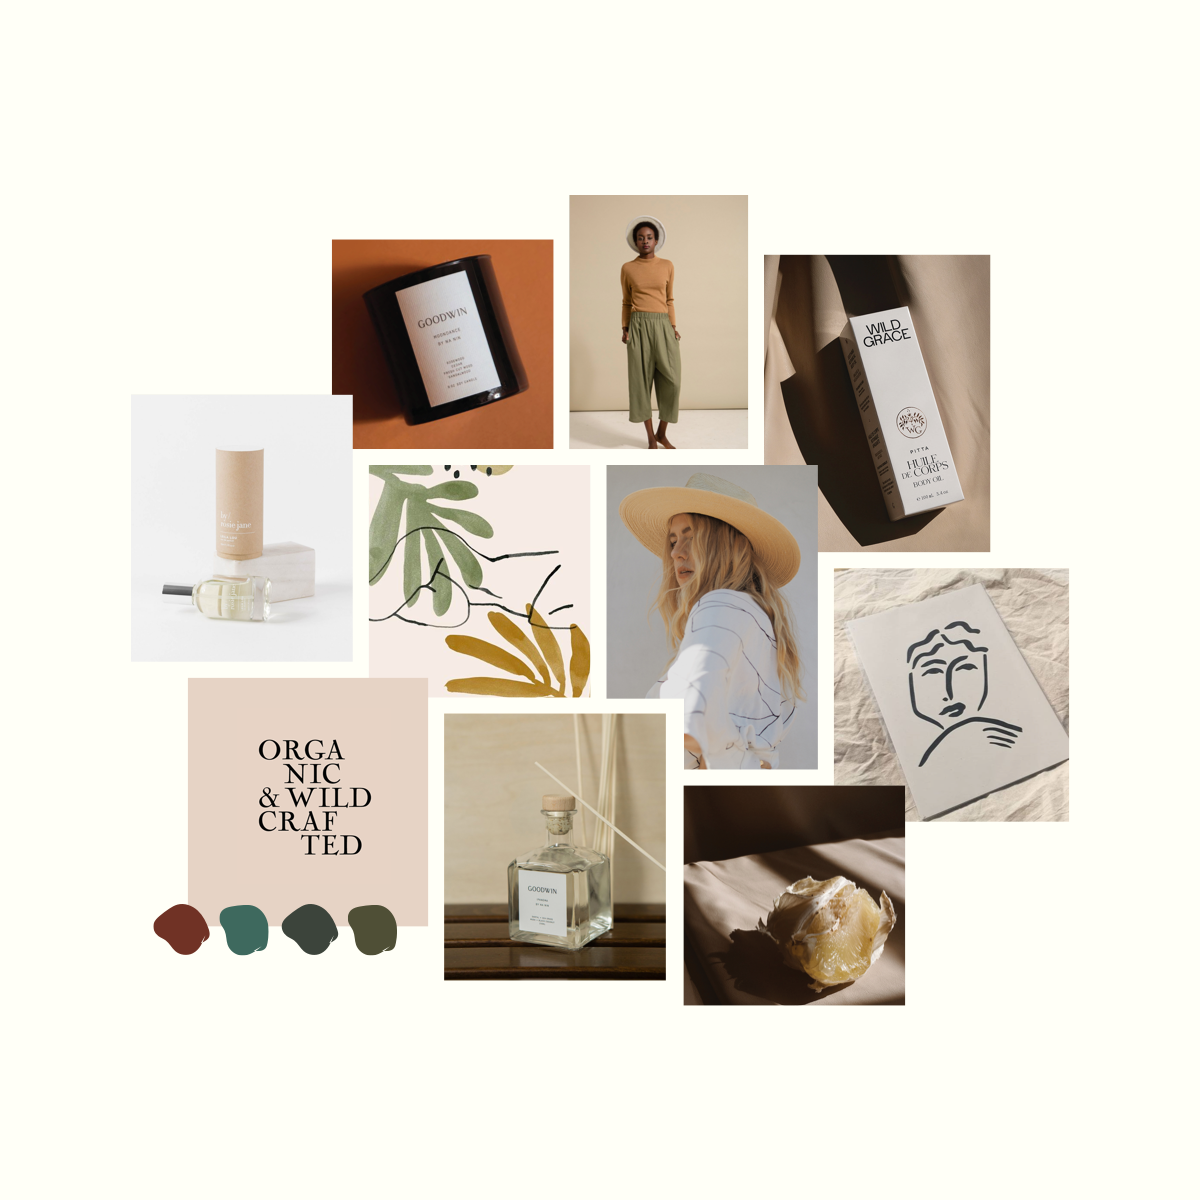 ethical-design-agency-betsy-francis-graphic-designer-sustainable-wellbeing-illustration-moodboard.png